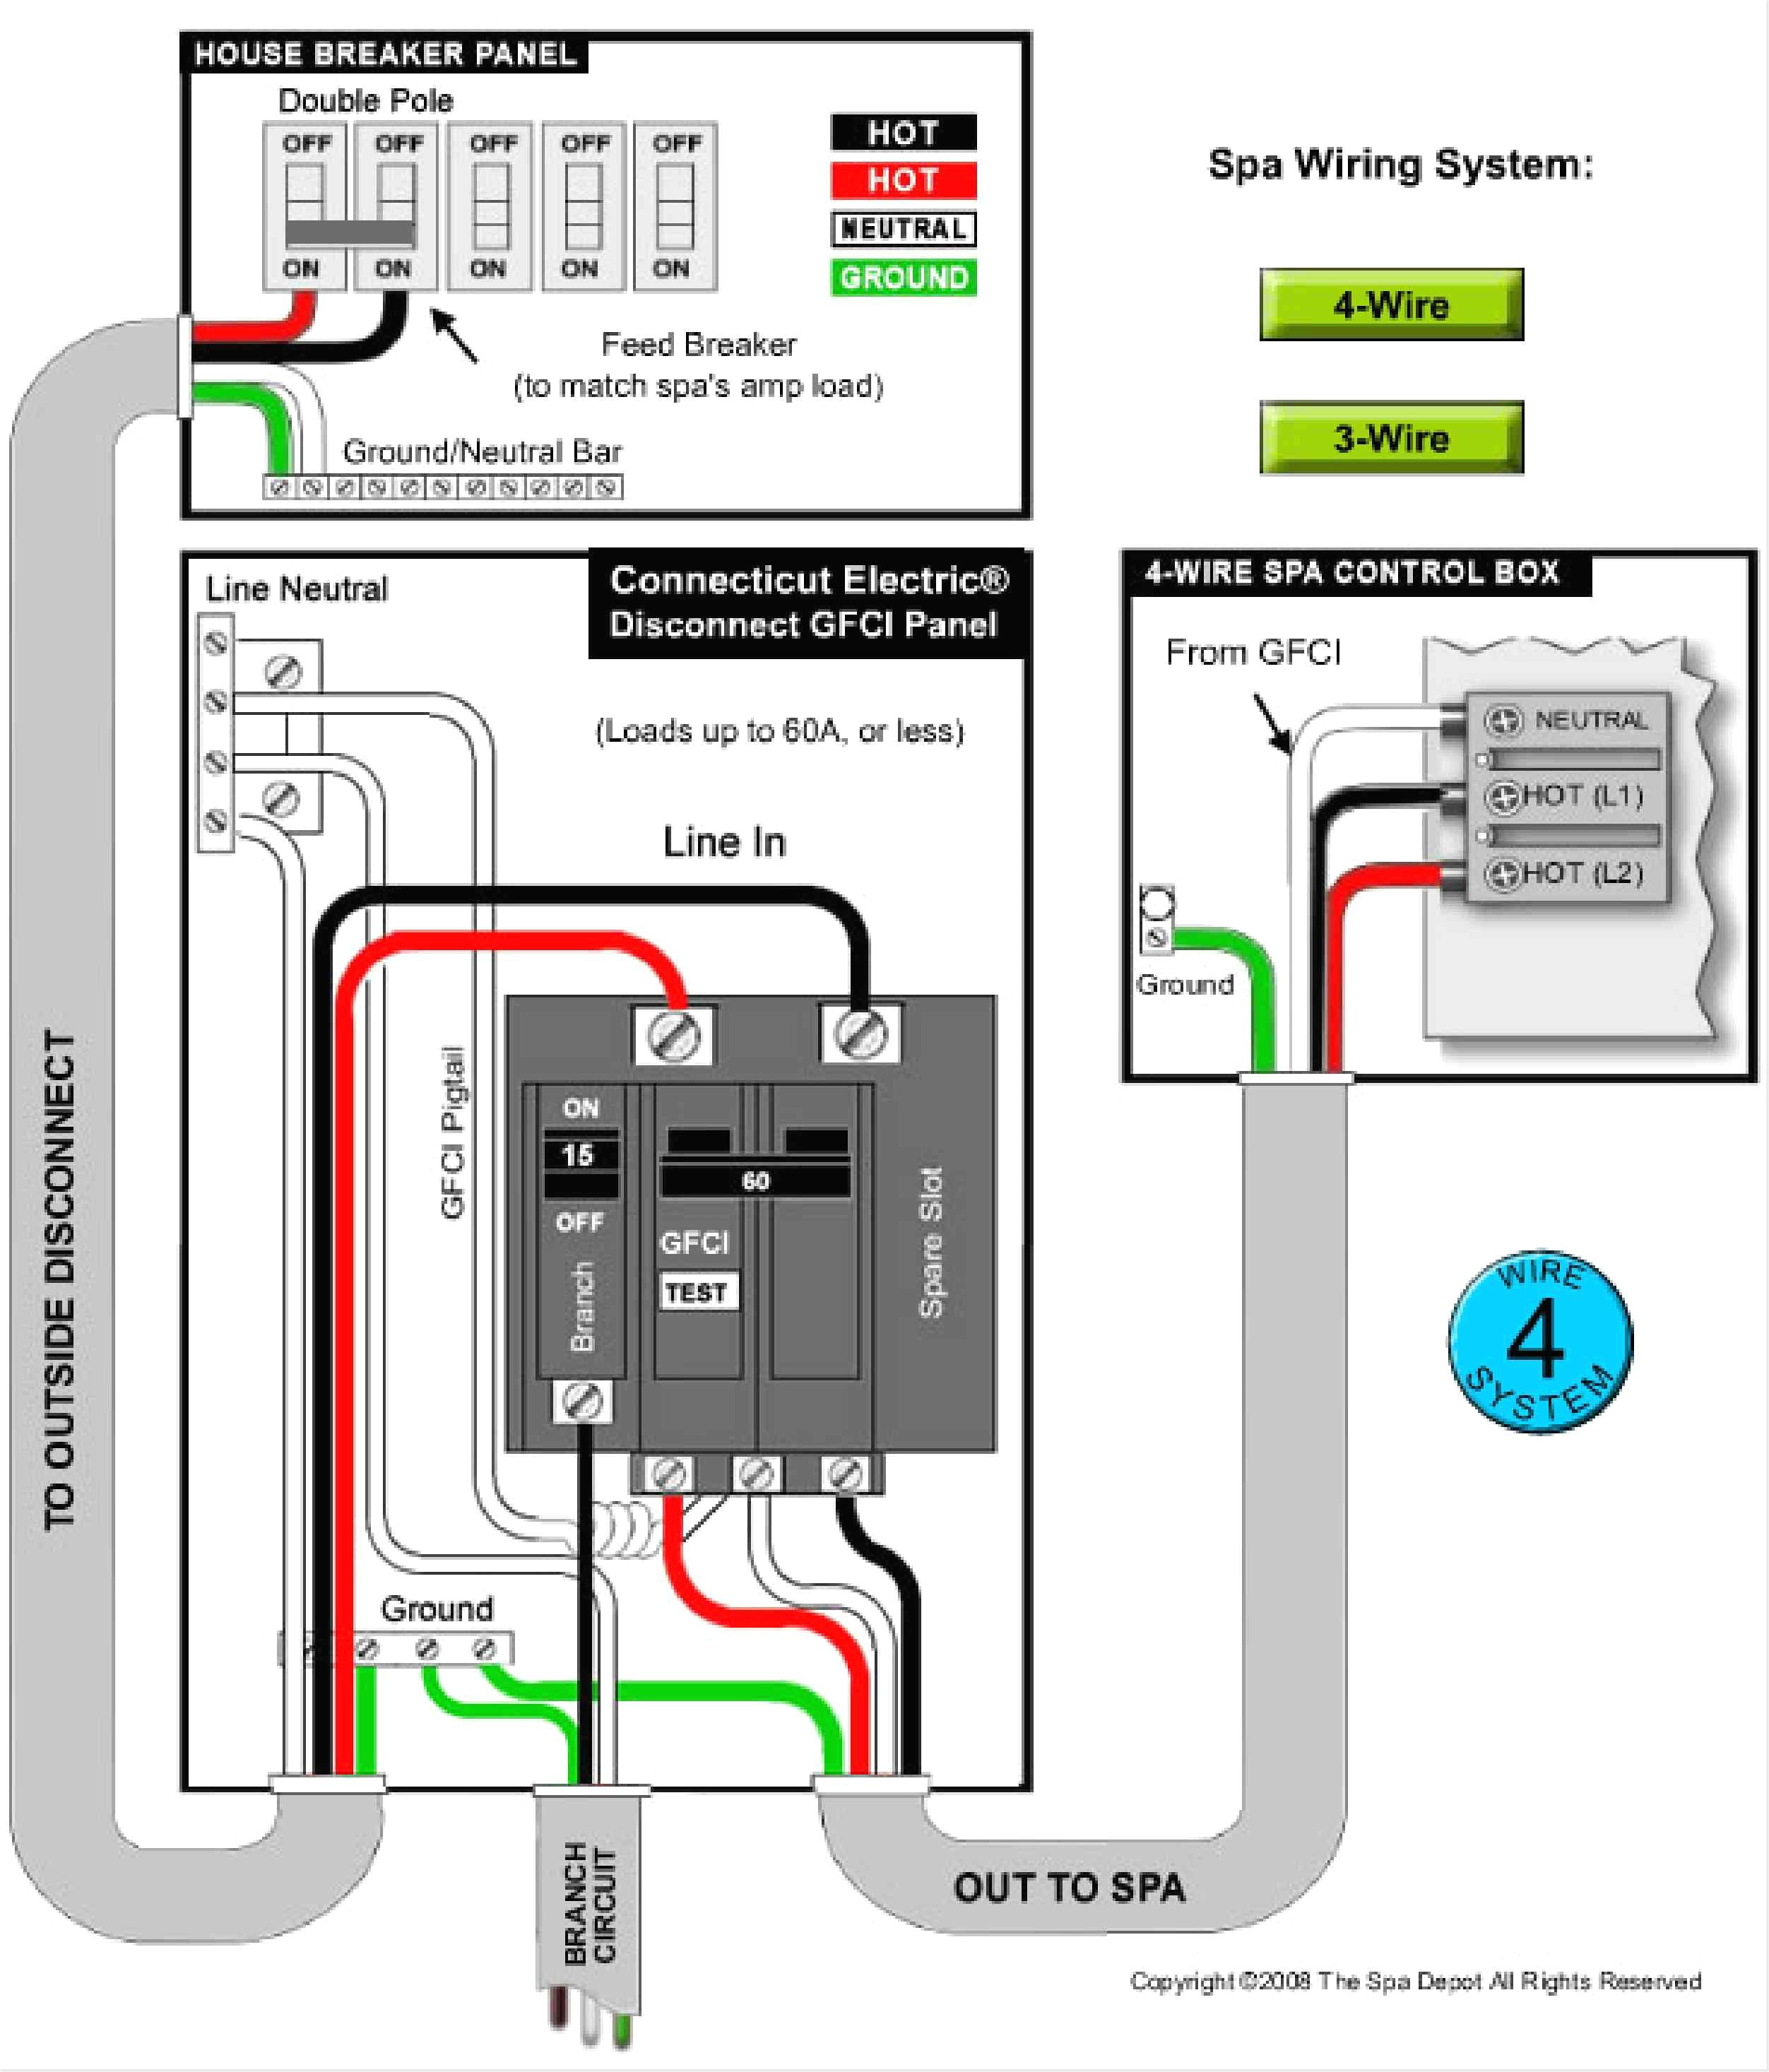 Switch Wiring Diagram As Well Cutler Hammer Motor Starter Square D Schematic Data Basic For Typical Pool Light Library